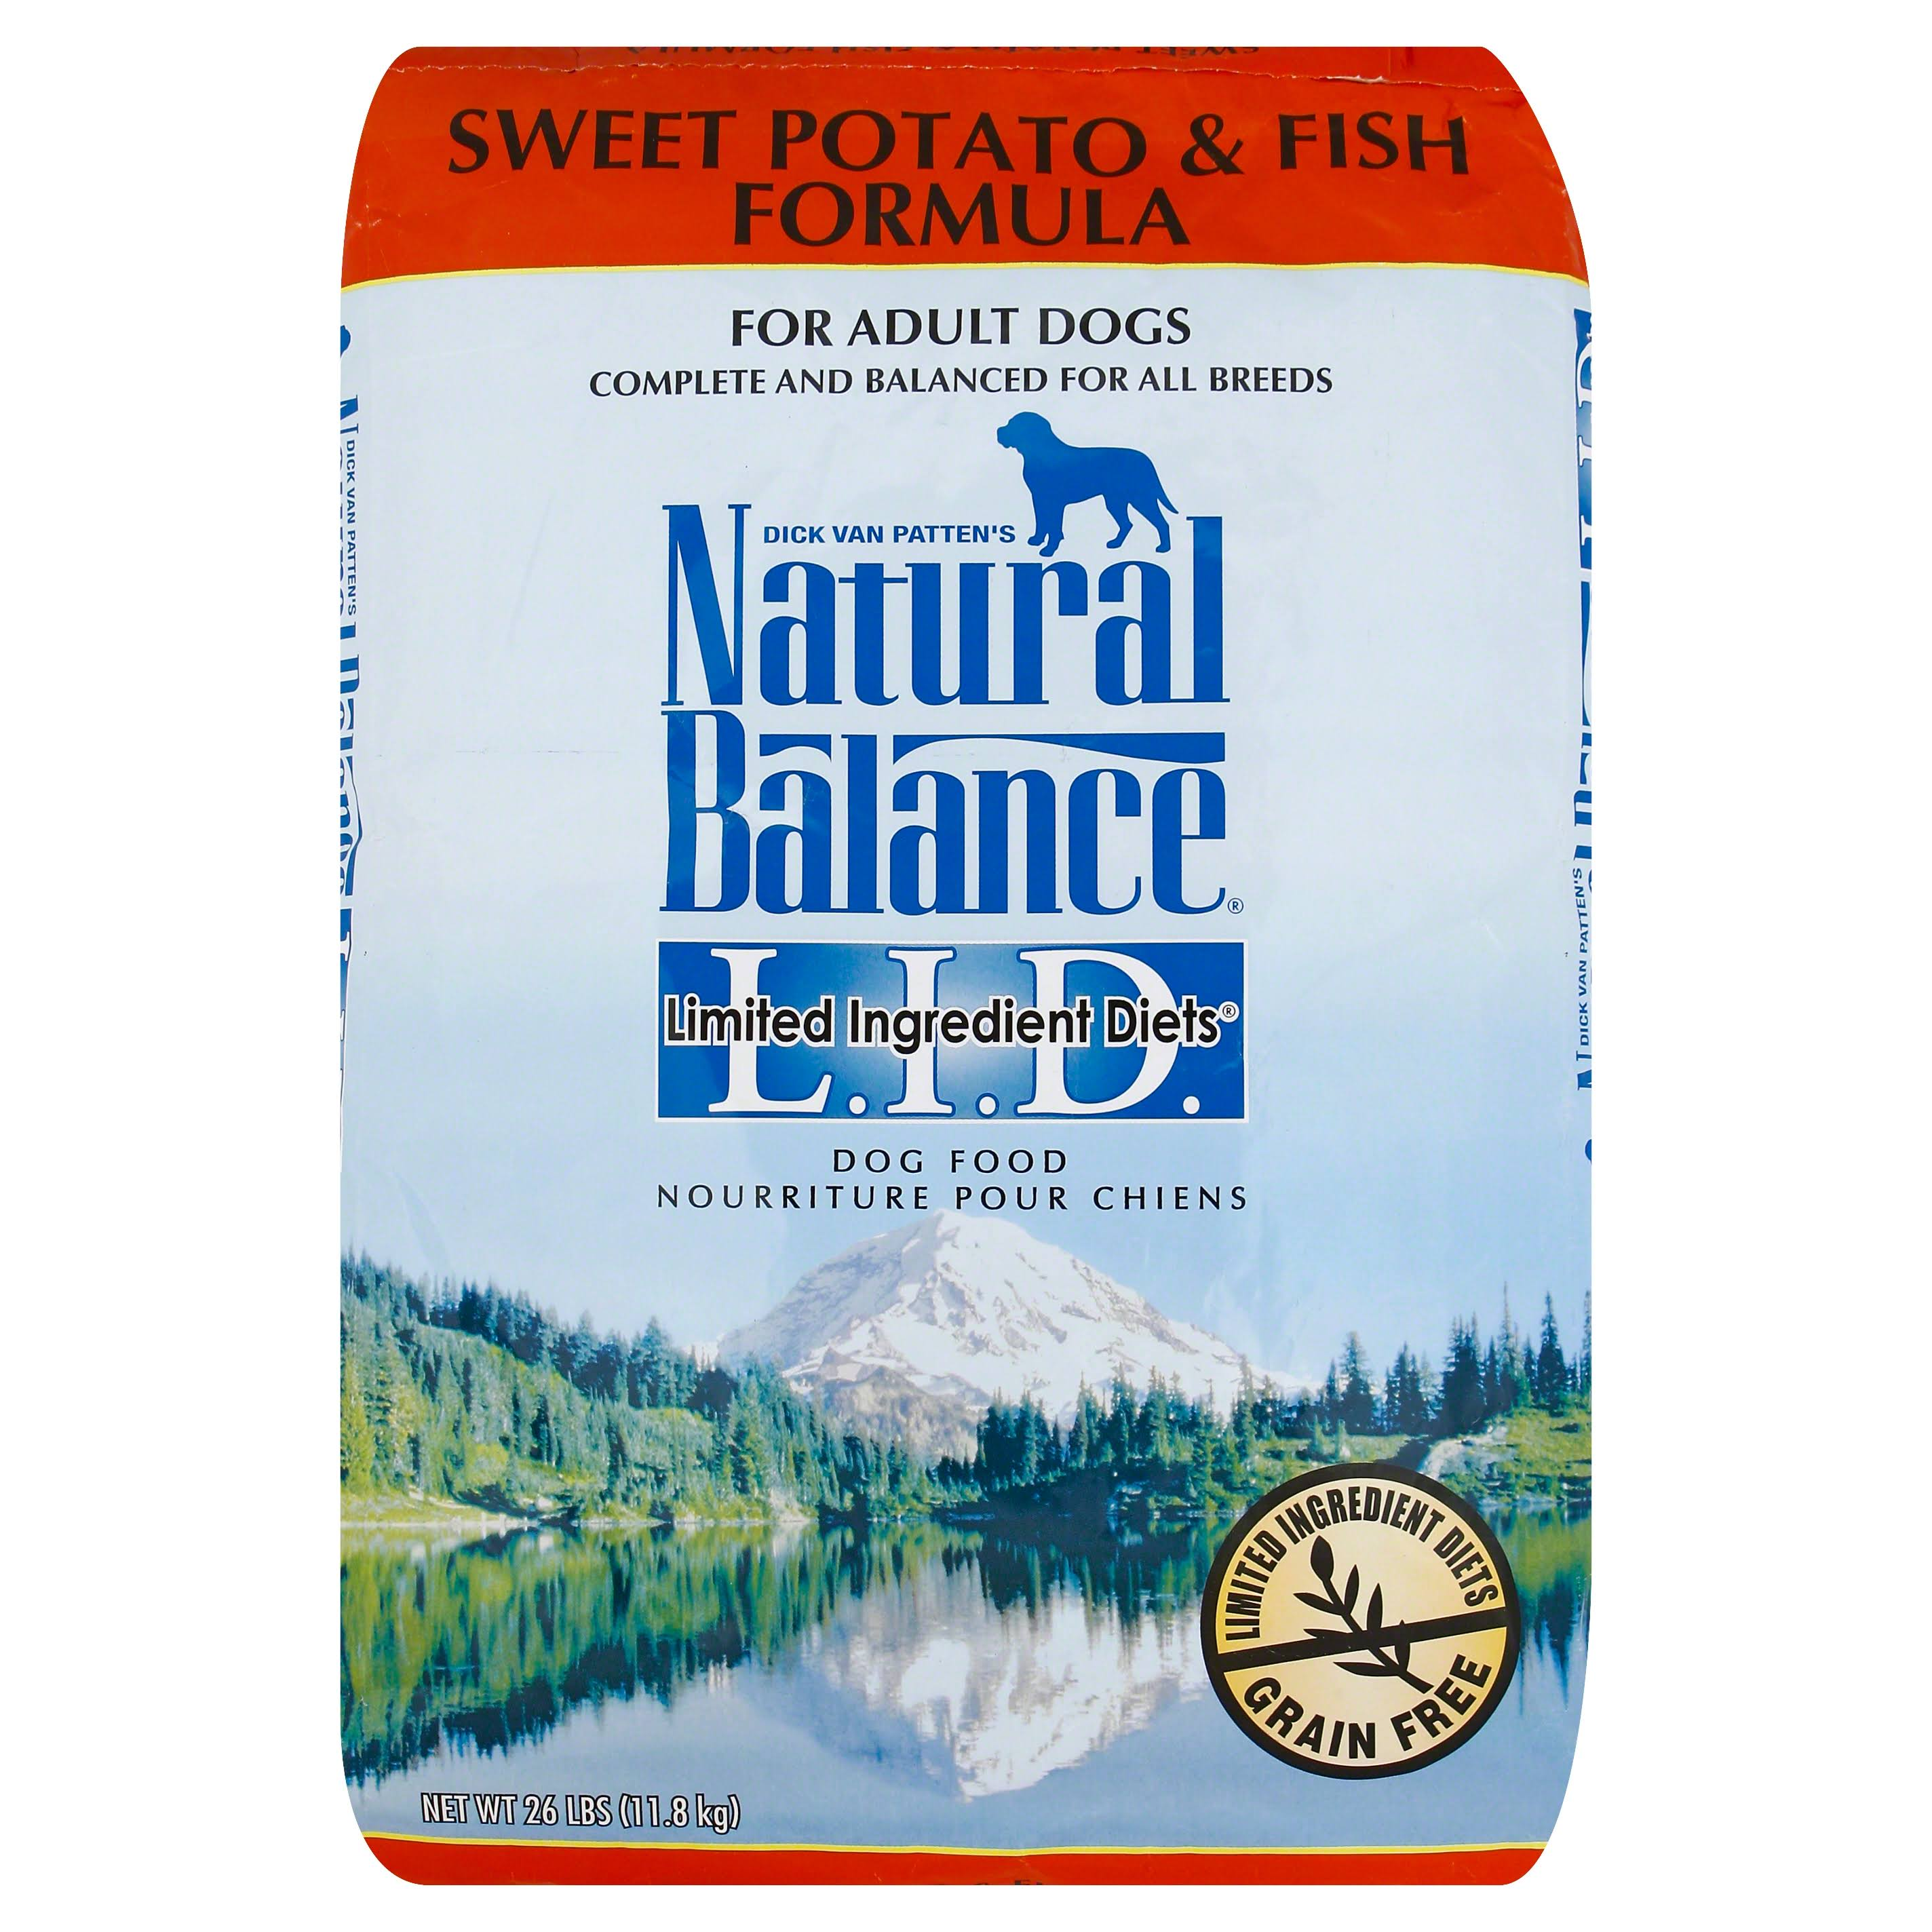 Natural Balance Limited Ingredient Diet Dog Food - Sweet Potato and Fish, Dry, 26lb